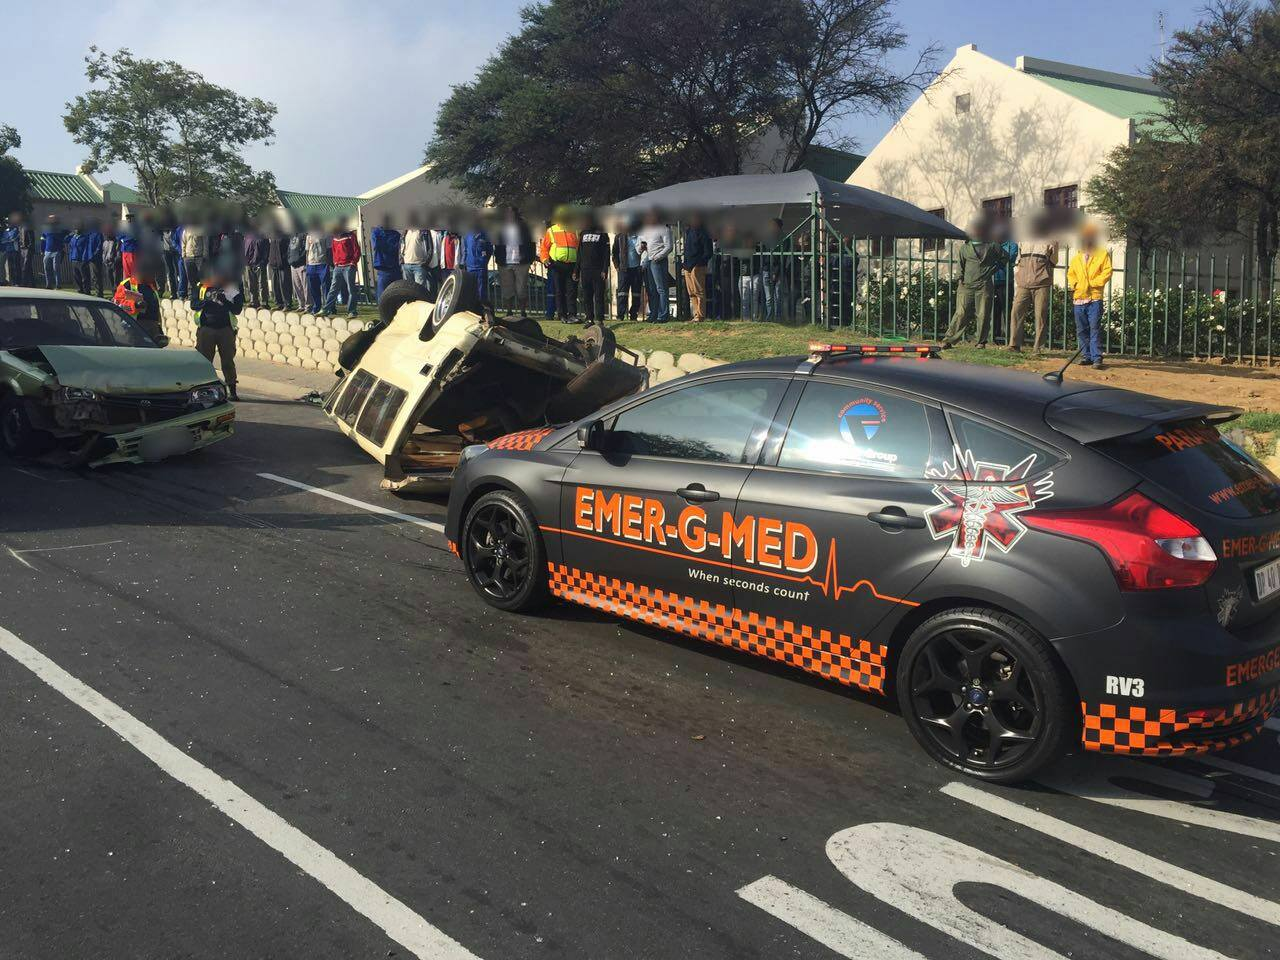 14 Injured when taxi and bakkie collided in Krugersdorp